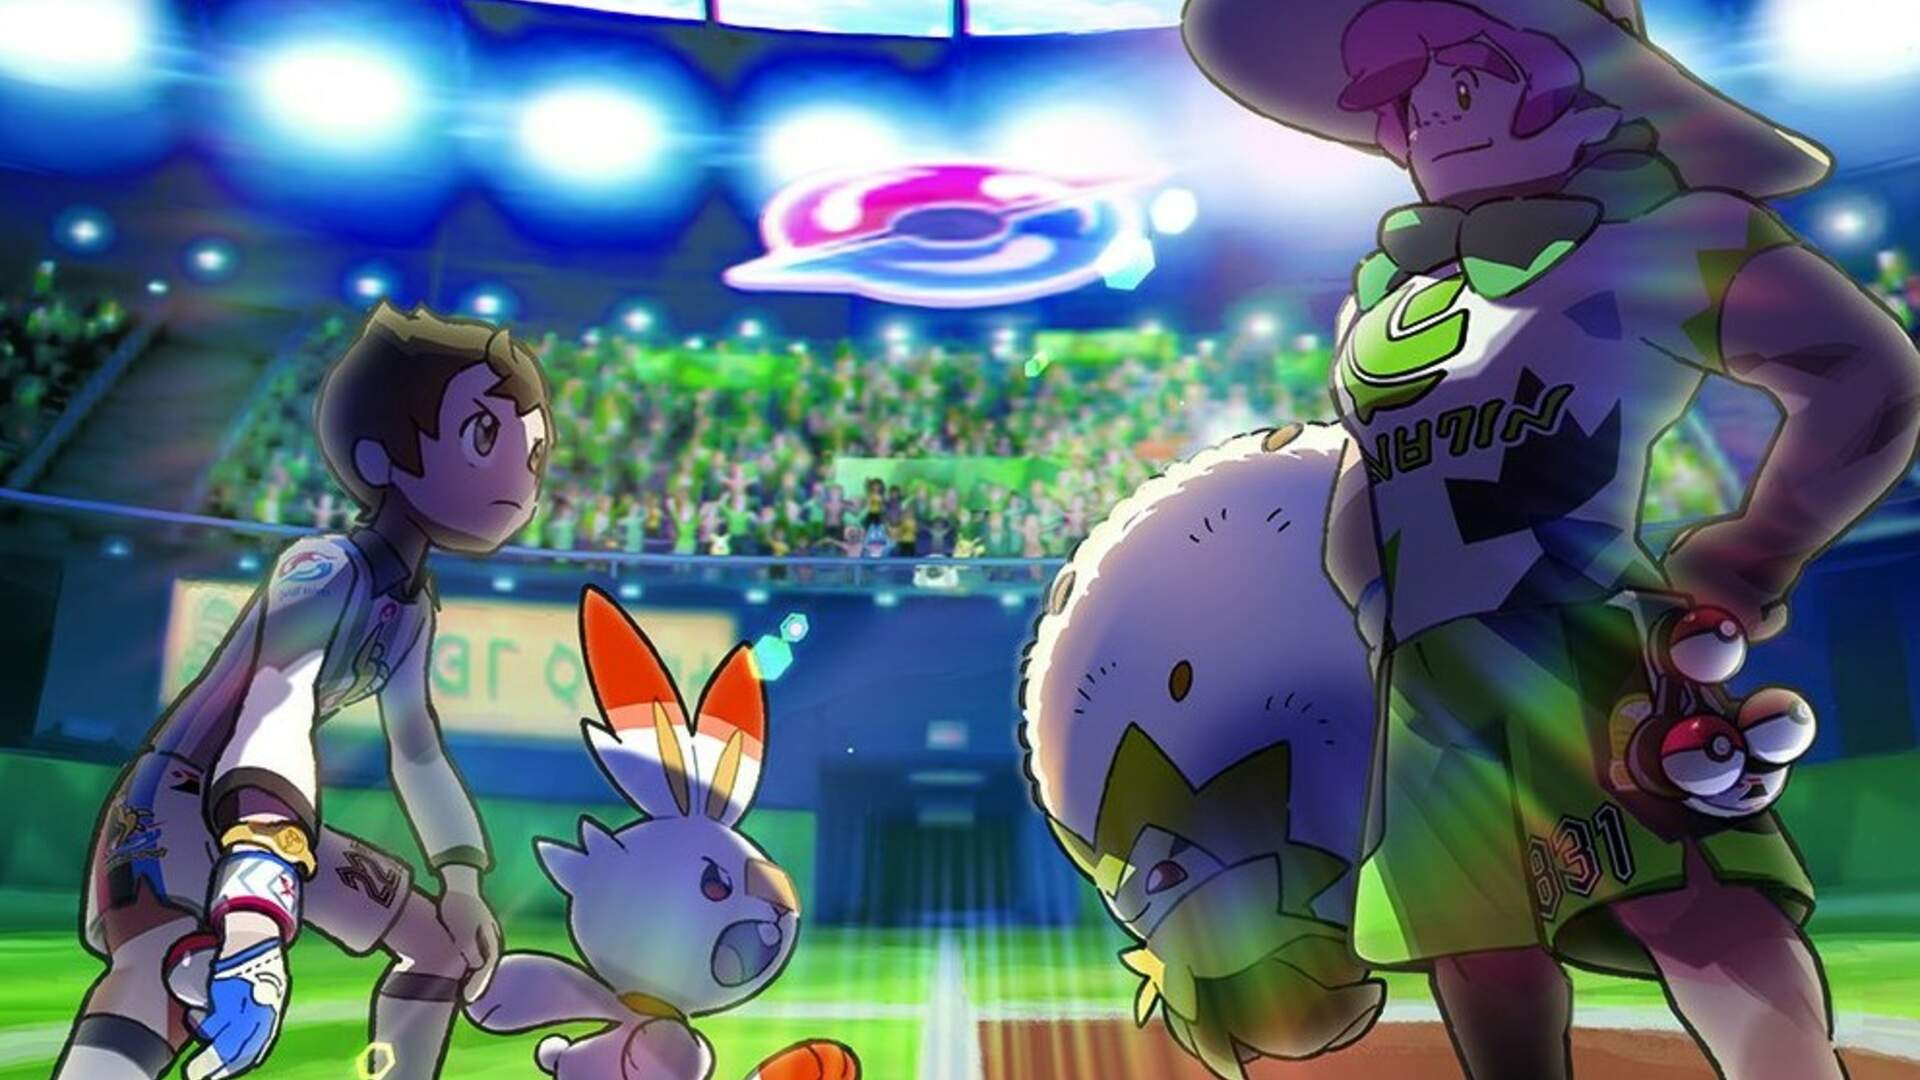 Pokemon Sword and Shield Version Exclusives: Exclusive Pokemon, Exclusive Gym Leaders - What Are the Differences Between Sword and Shield